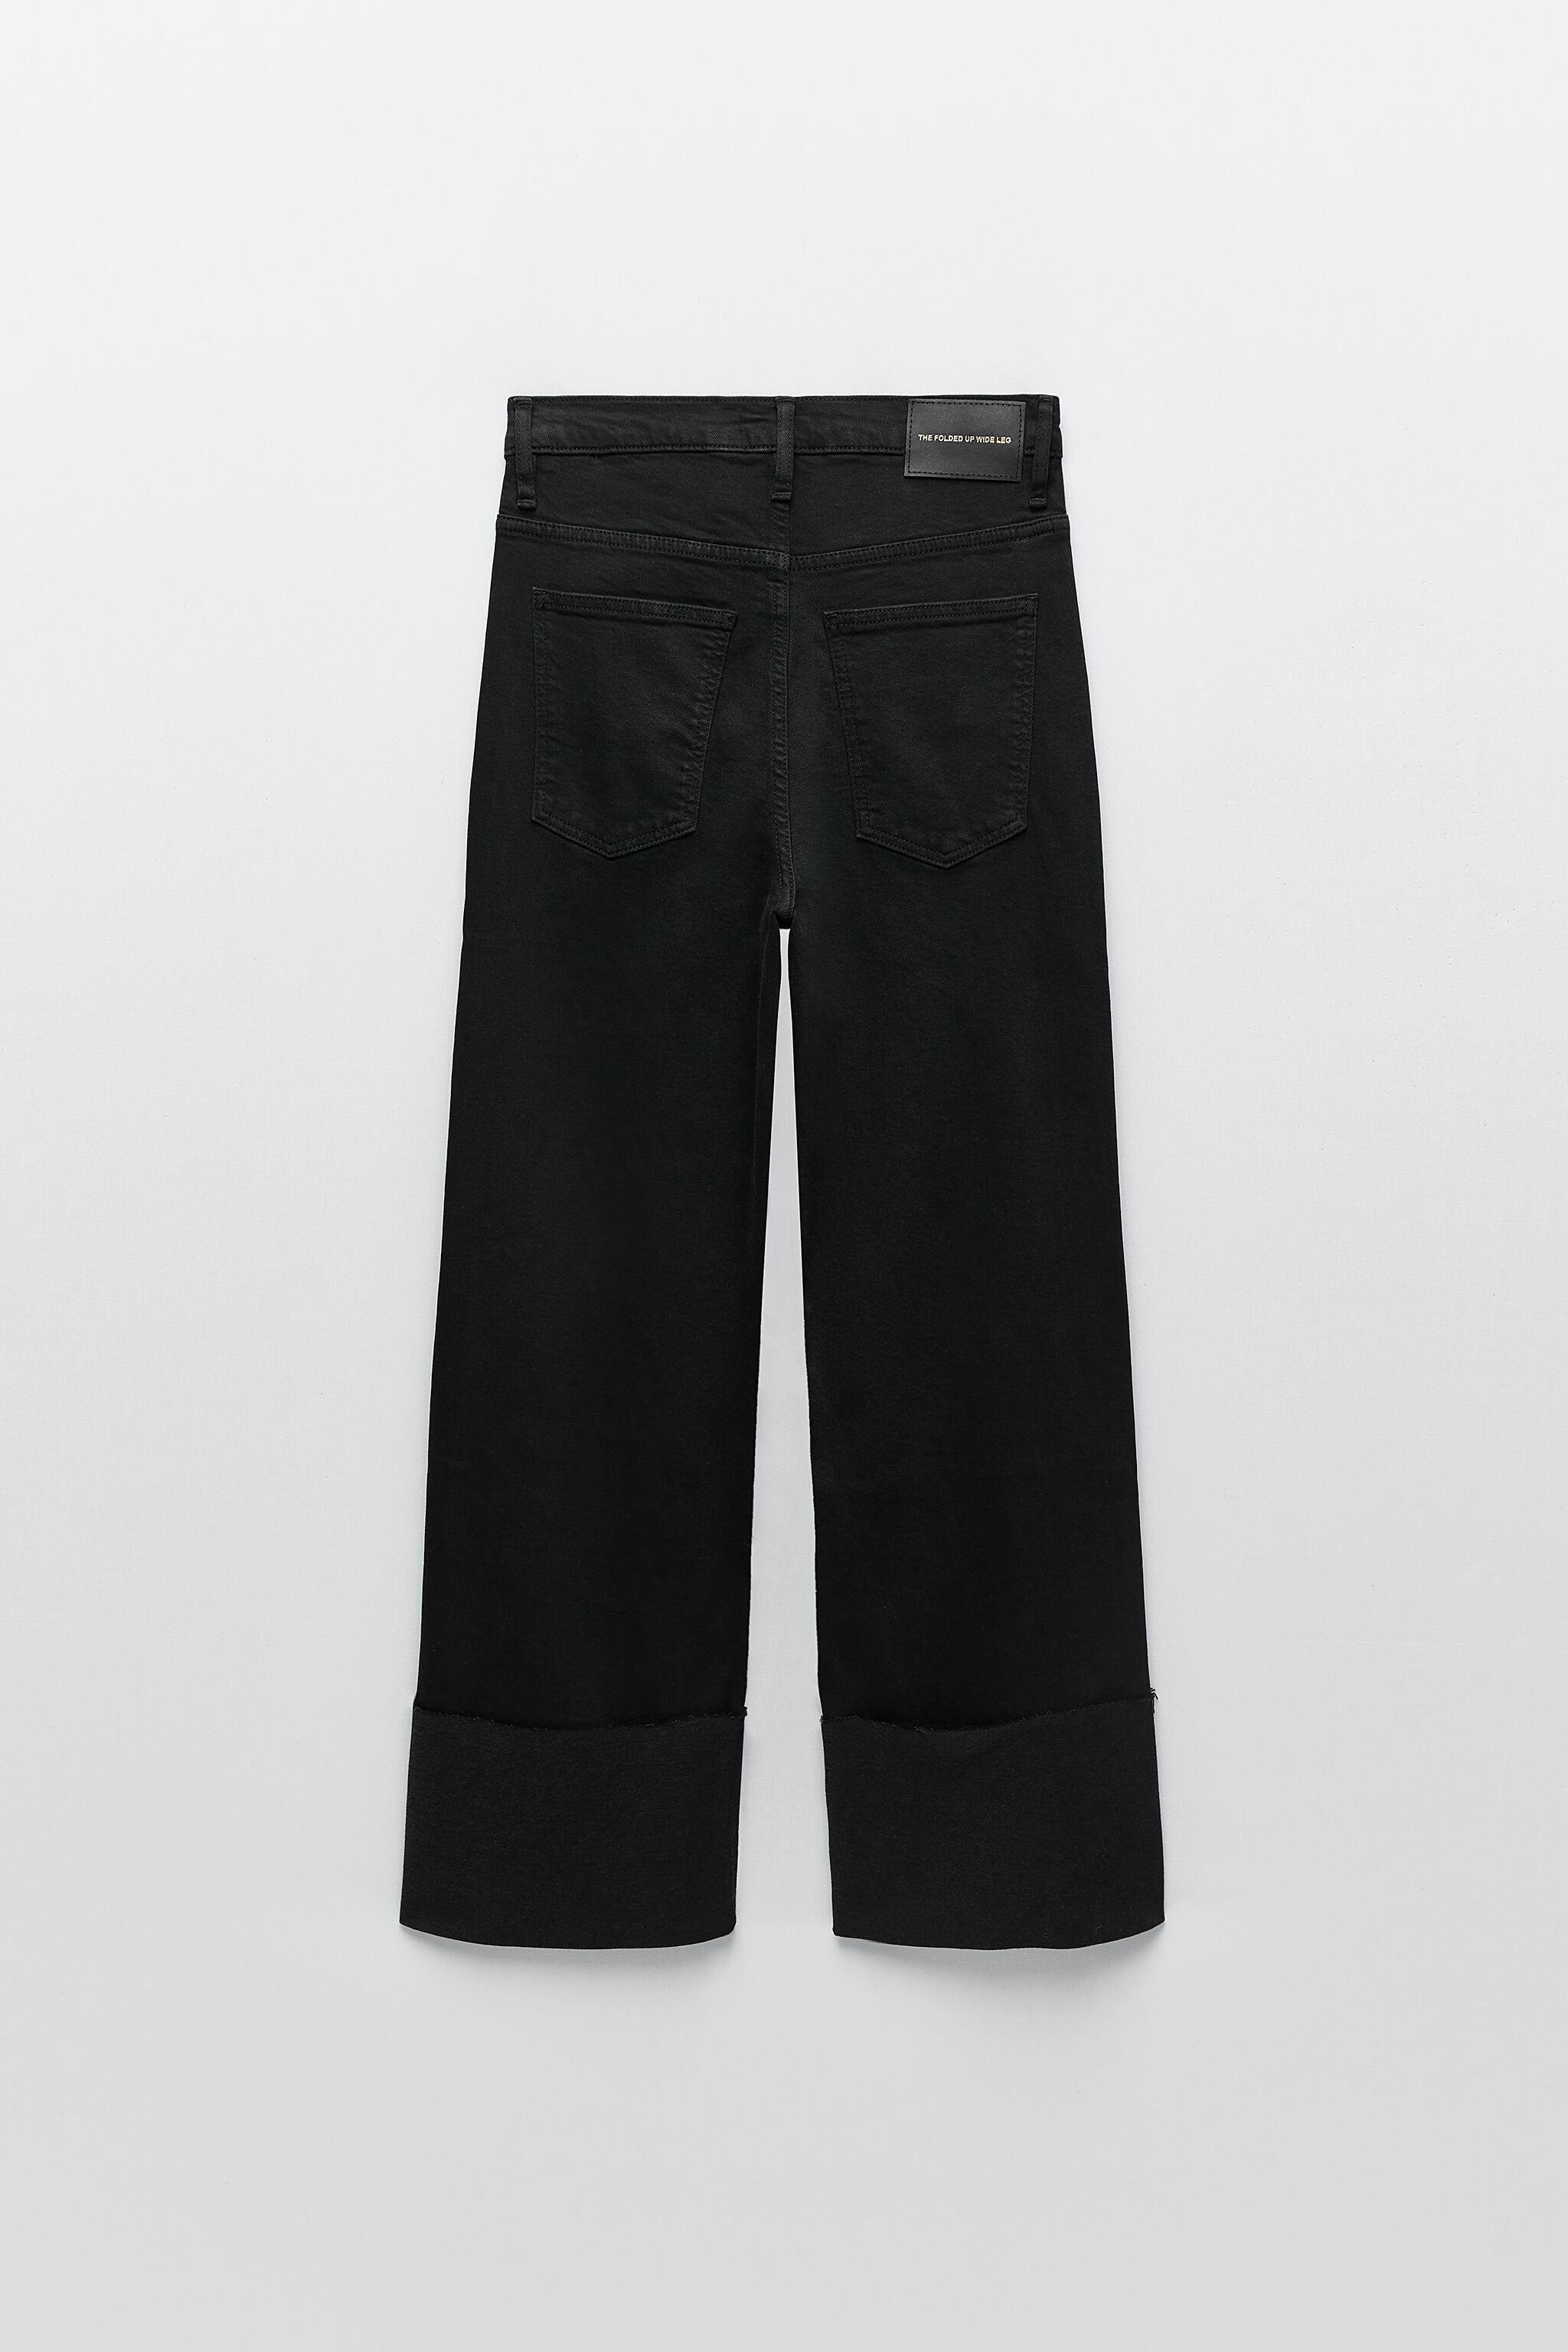 ZW THE FOLDED UP JEANS 7